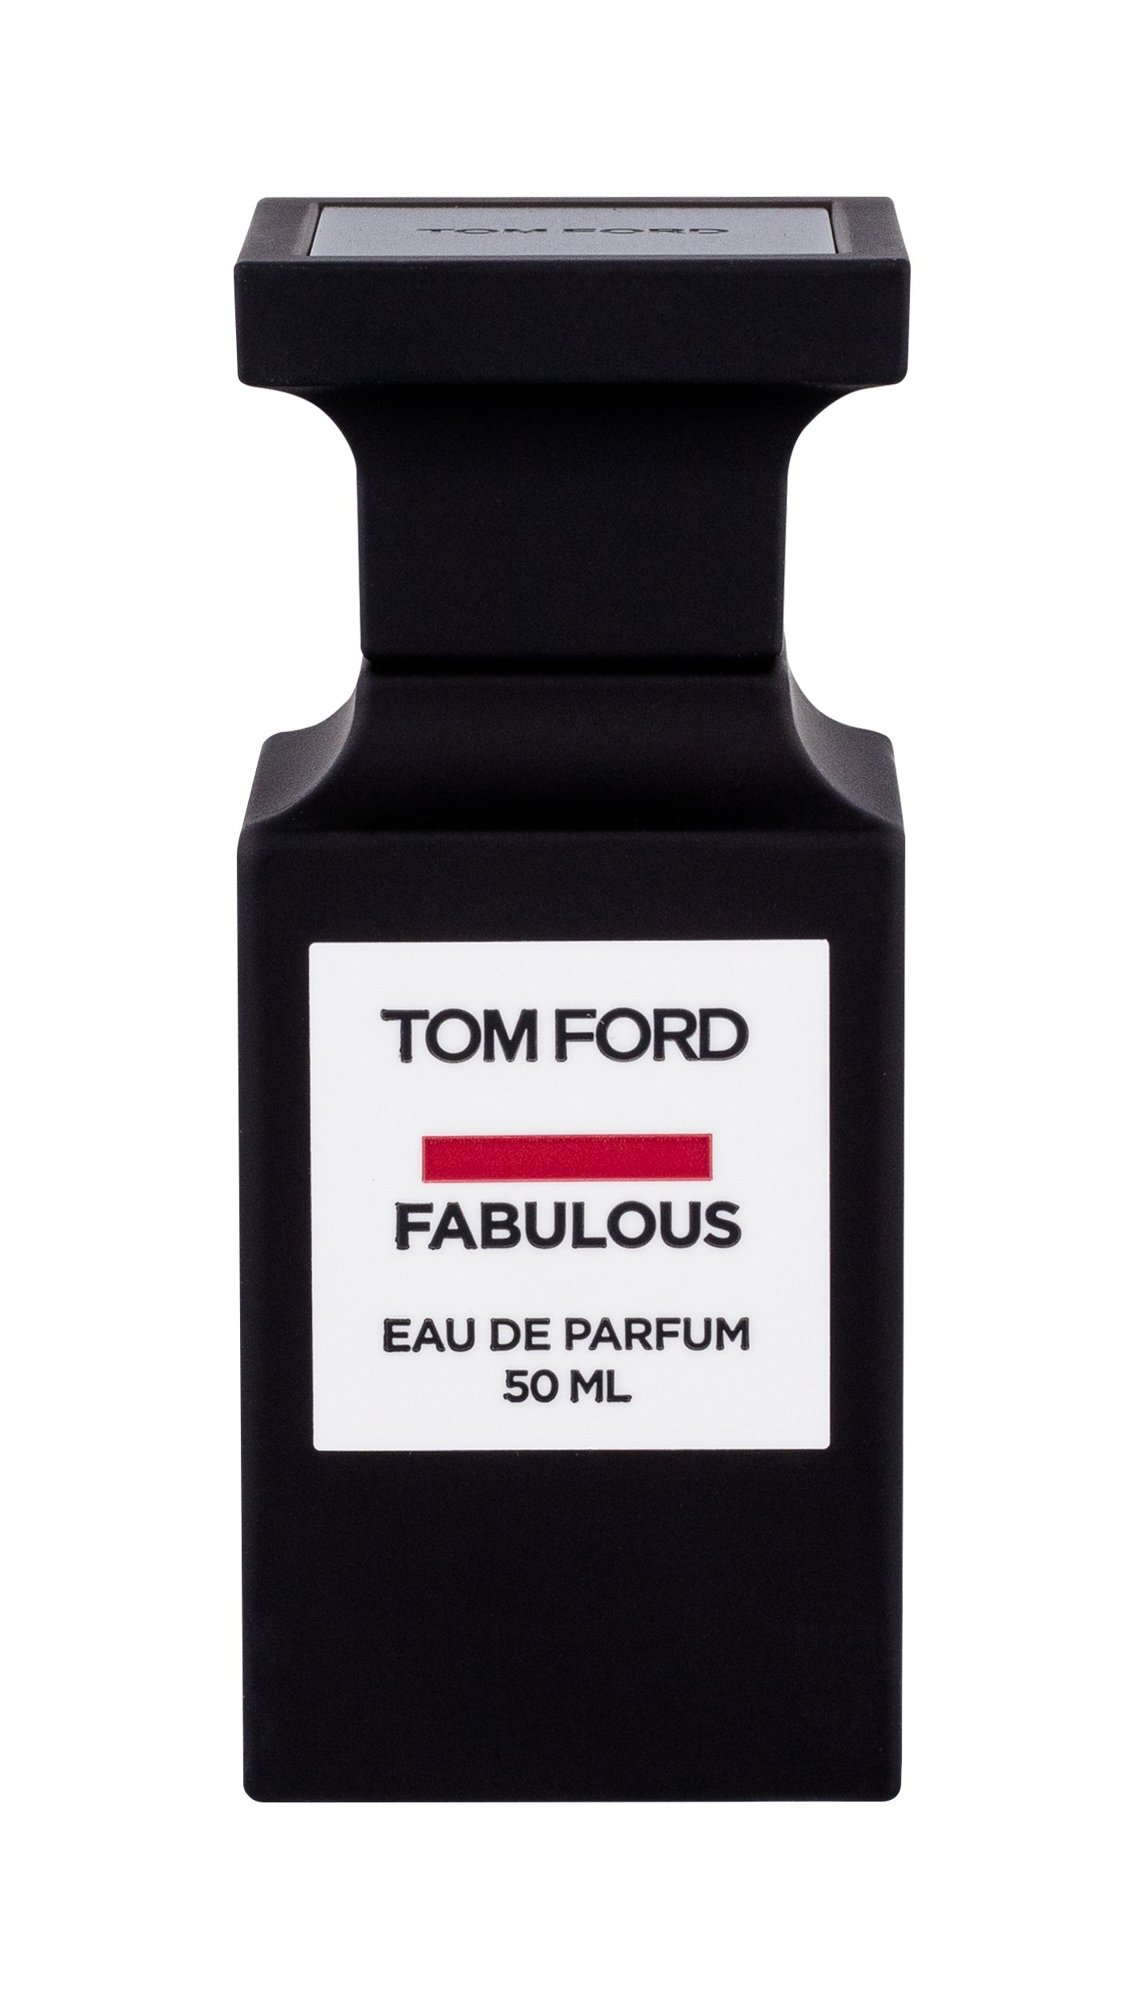 TOM FORD Fabulous Eau de Parfum 50ml